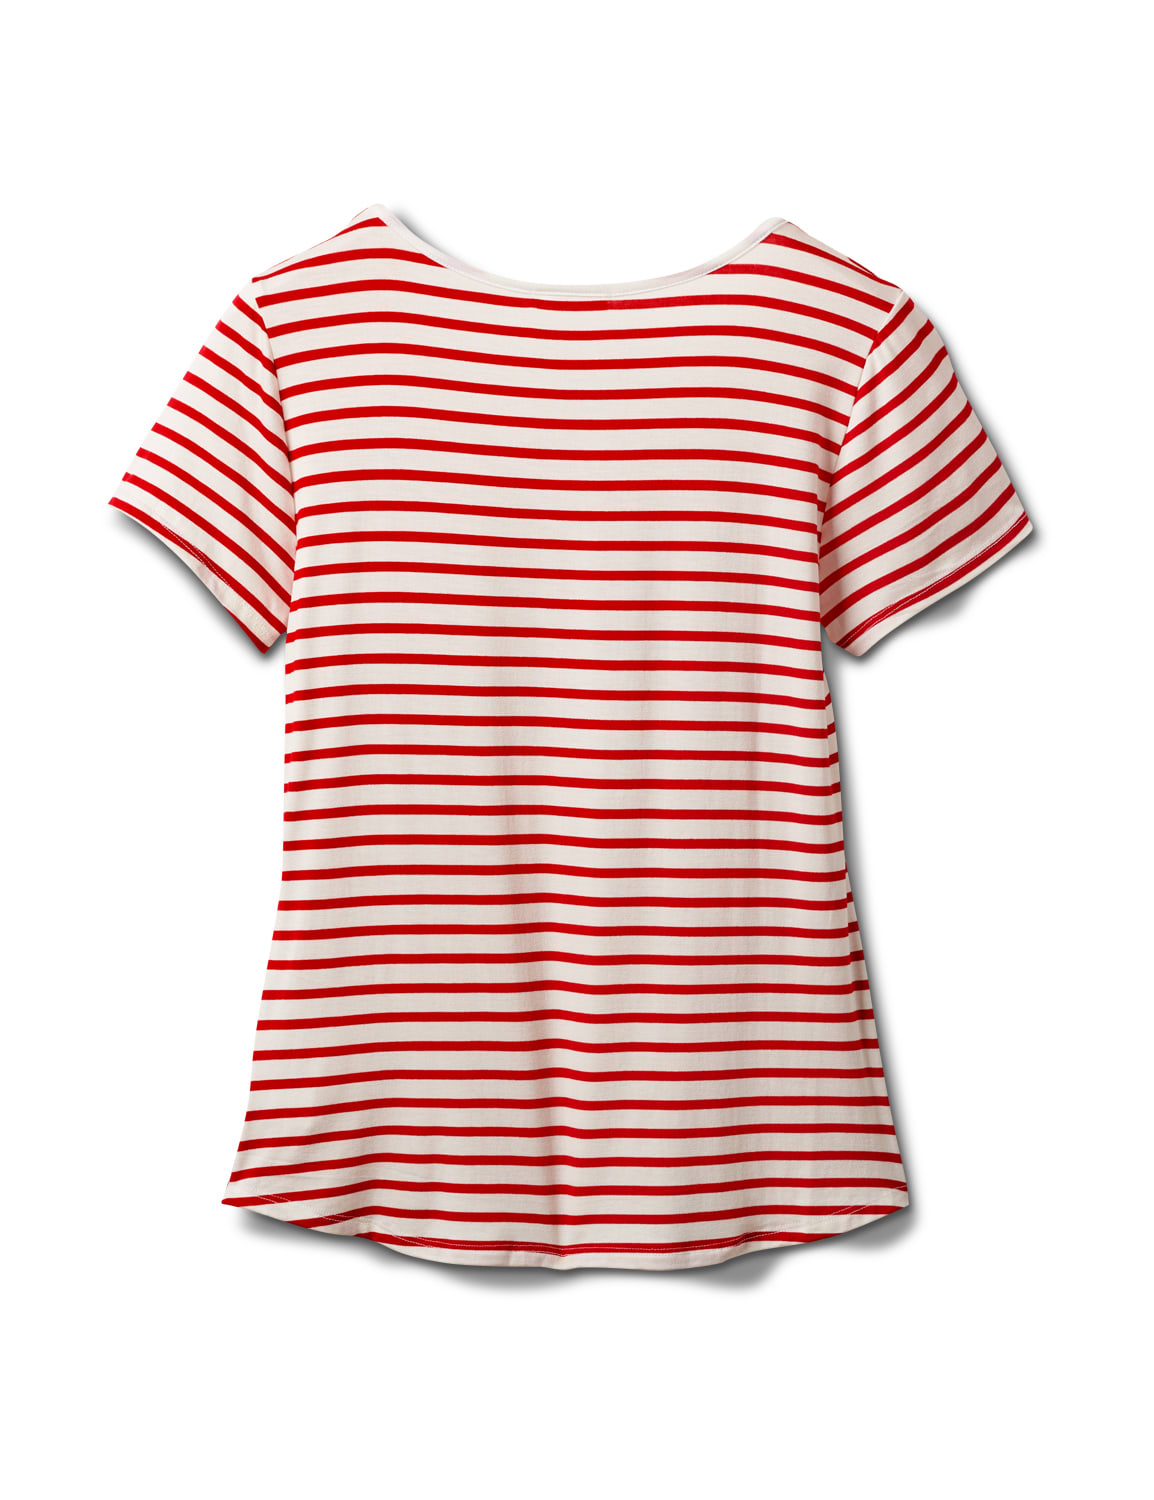 """America The Beautiful"" Stripe Rib Tee - Misses - Red - Back"